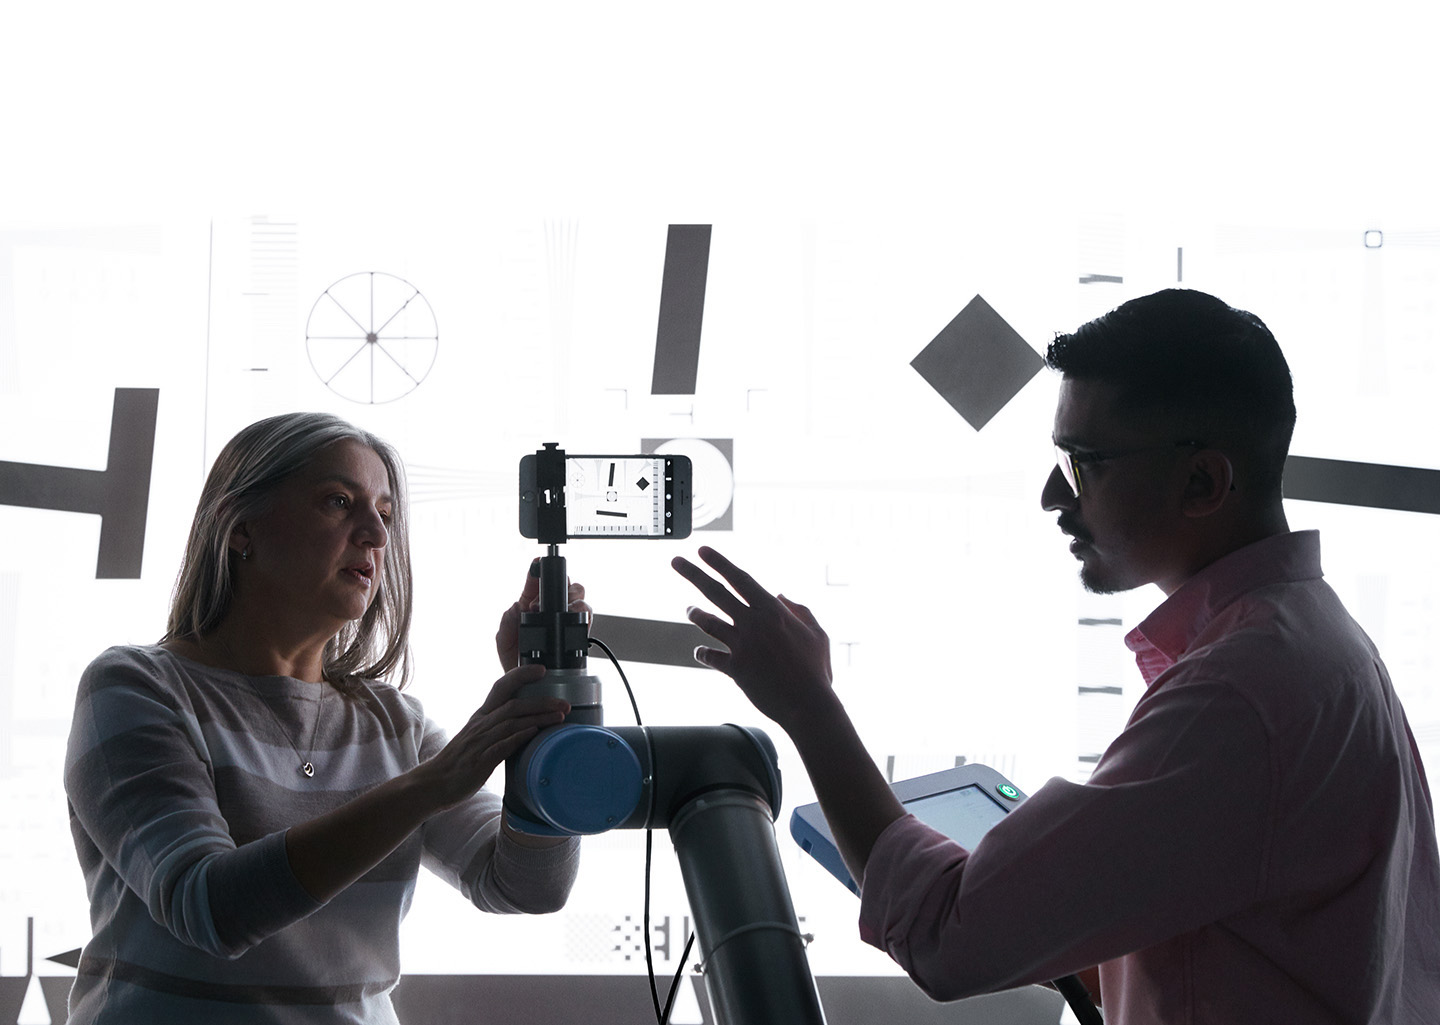 Two employees from the camera team collaborate in a lab